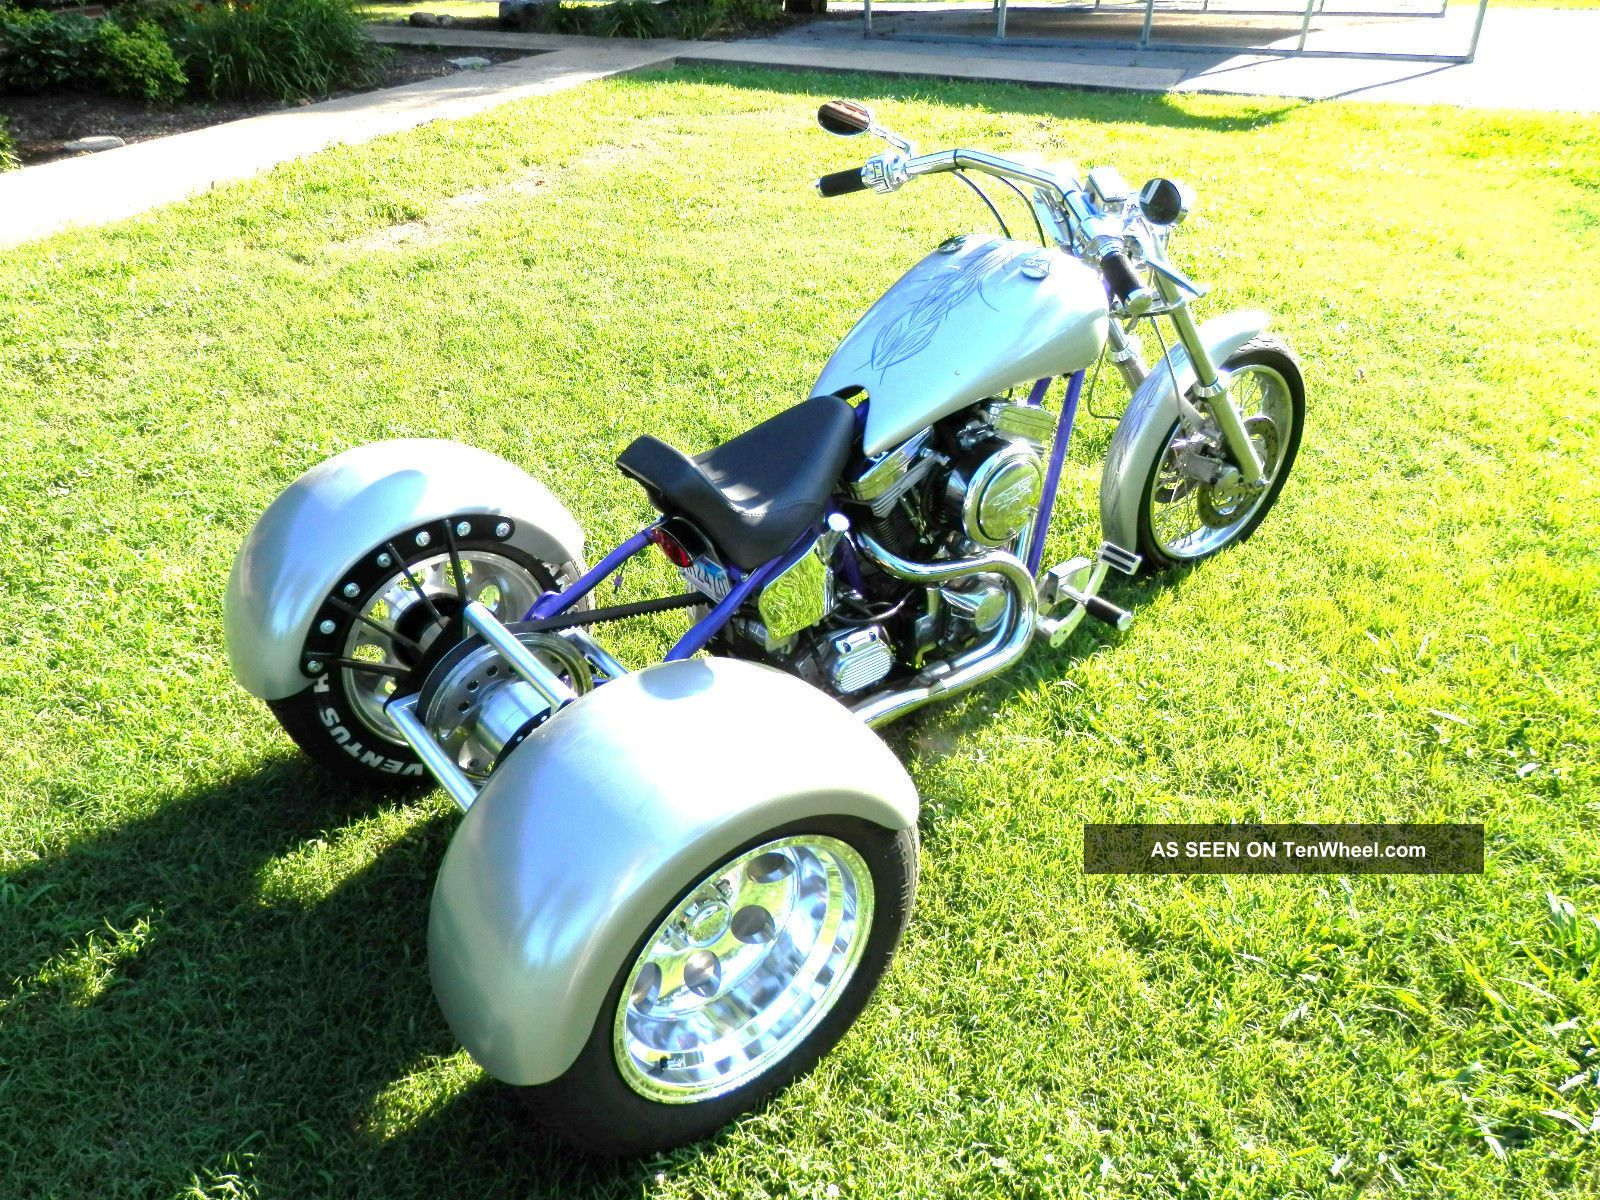 2004 Custom 3 Wheeler Chopper Trike (trade Custom Truck) Hot Rod Like Harley Other Makes photo